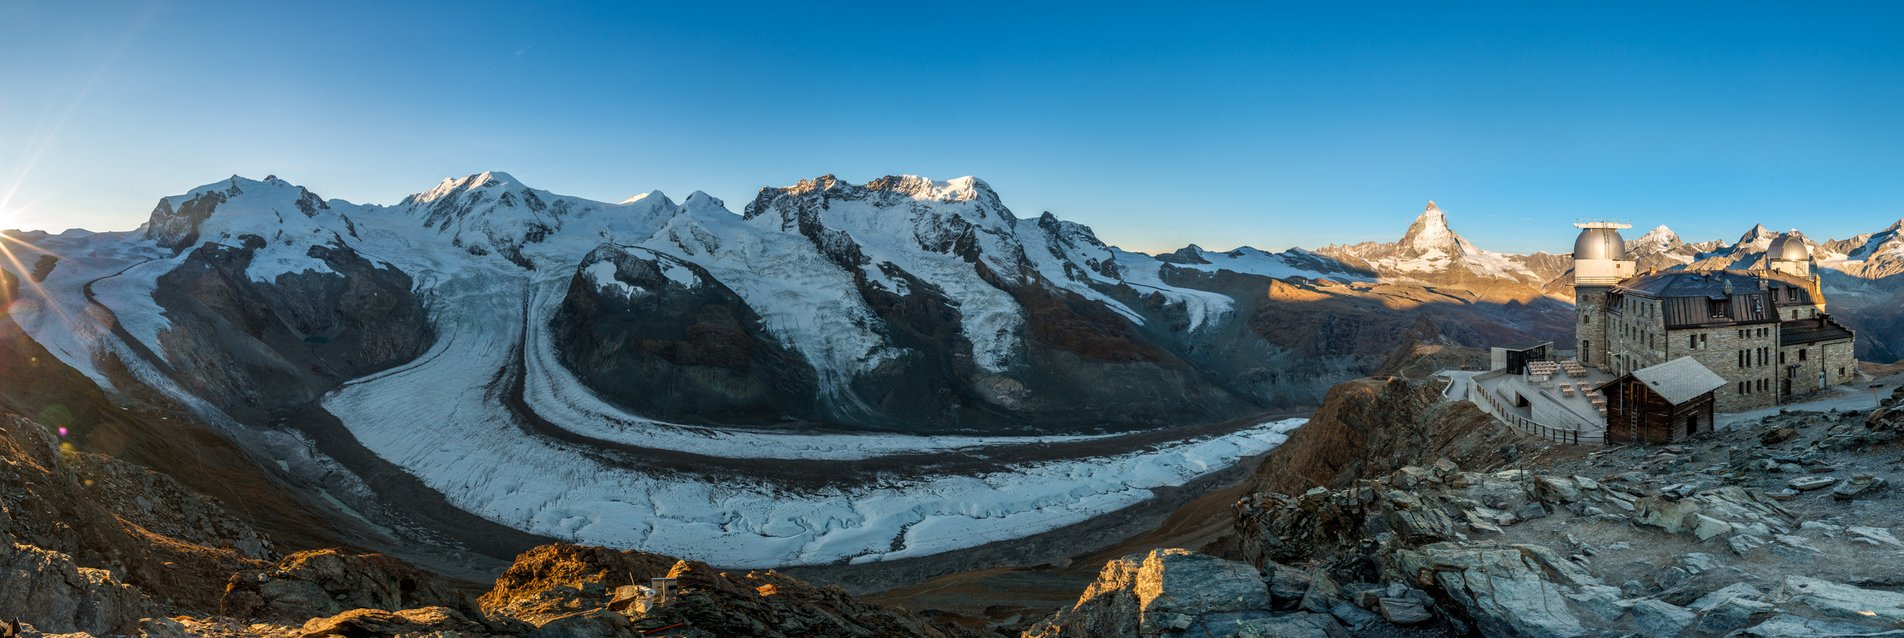 [Translate to French:] Panorama vom Gornergrat mit Gornergletscher